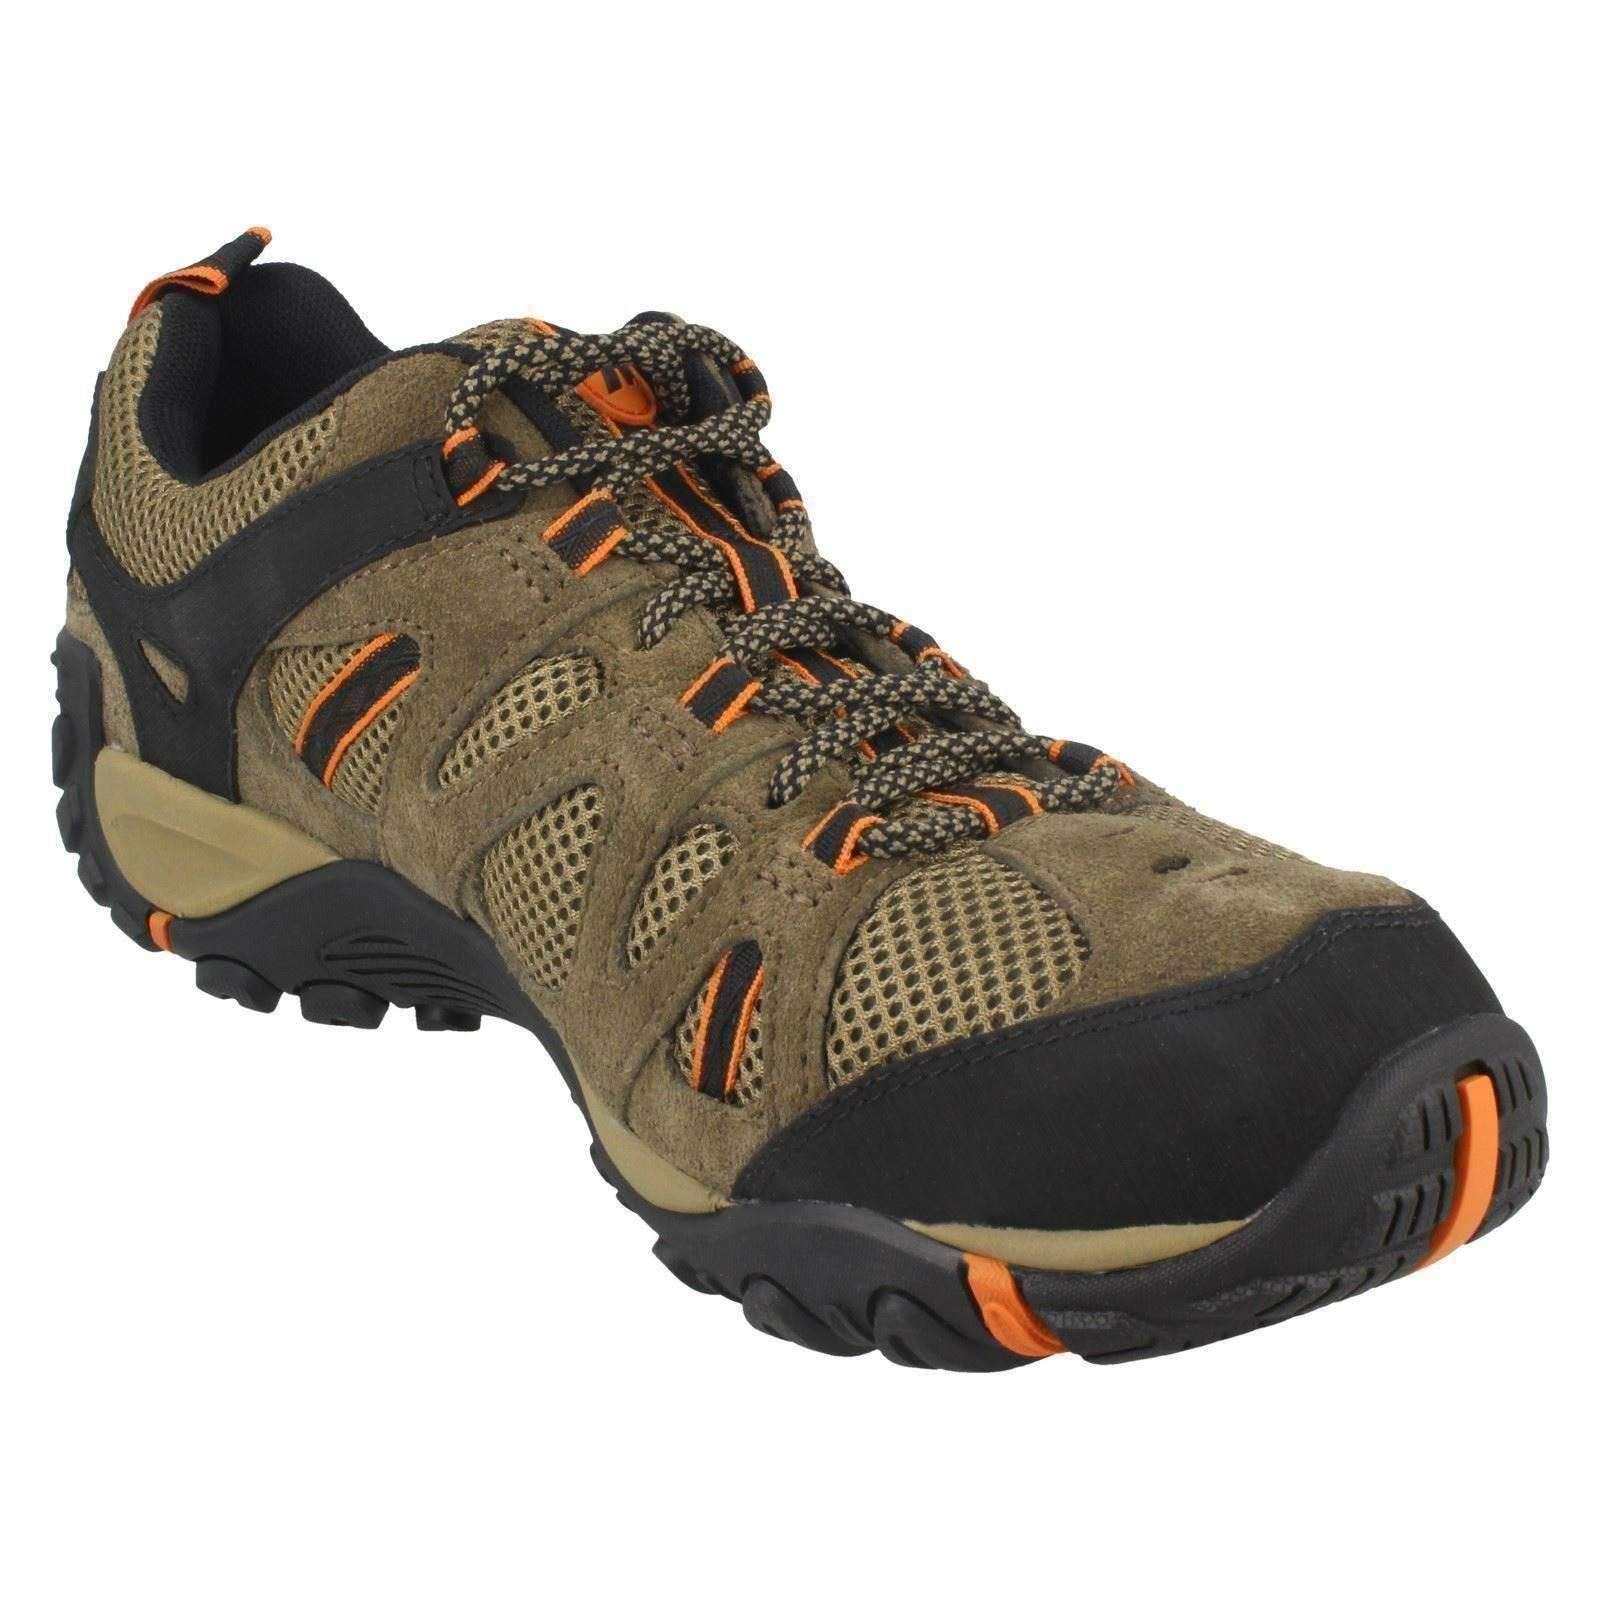 New Merrell Men's Forestbound Walking Shoe